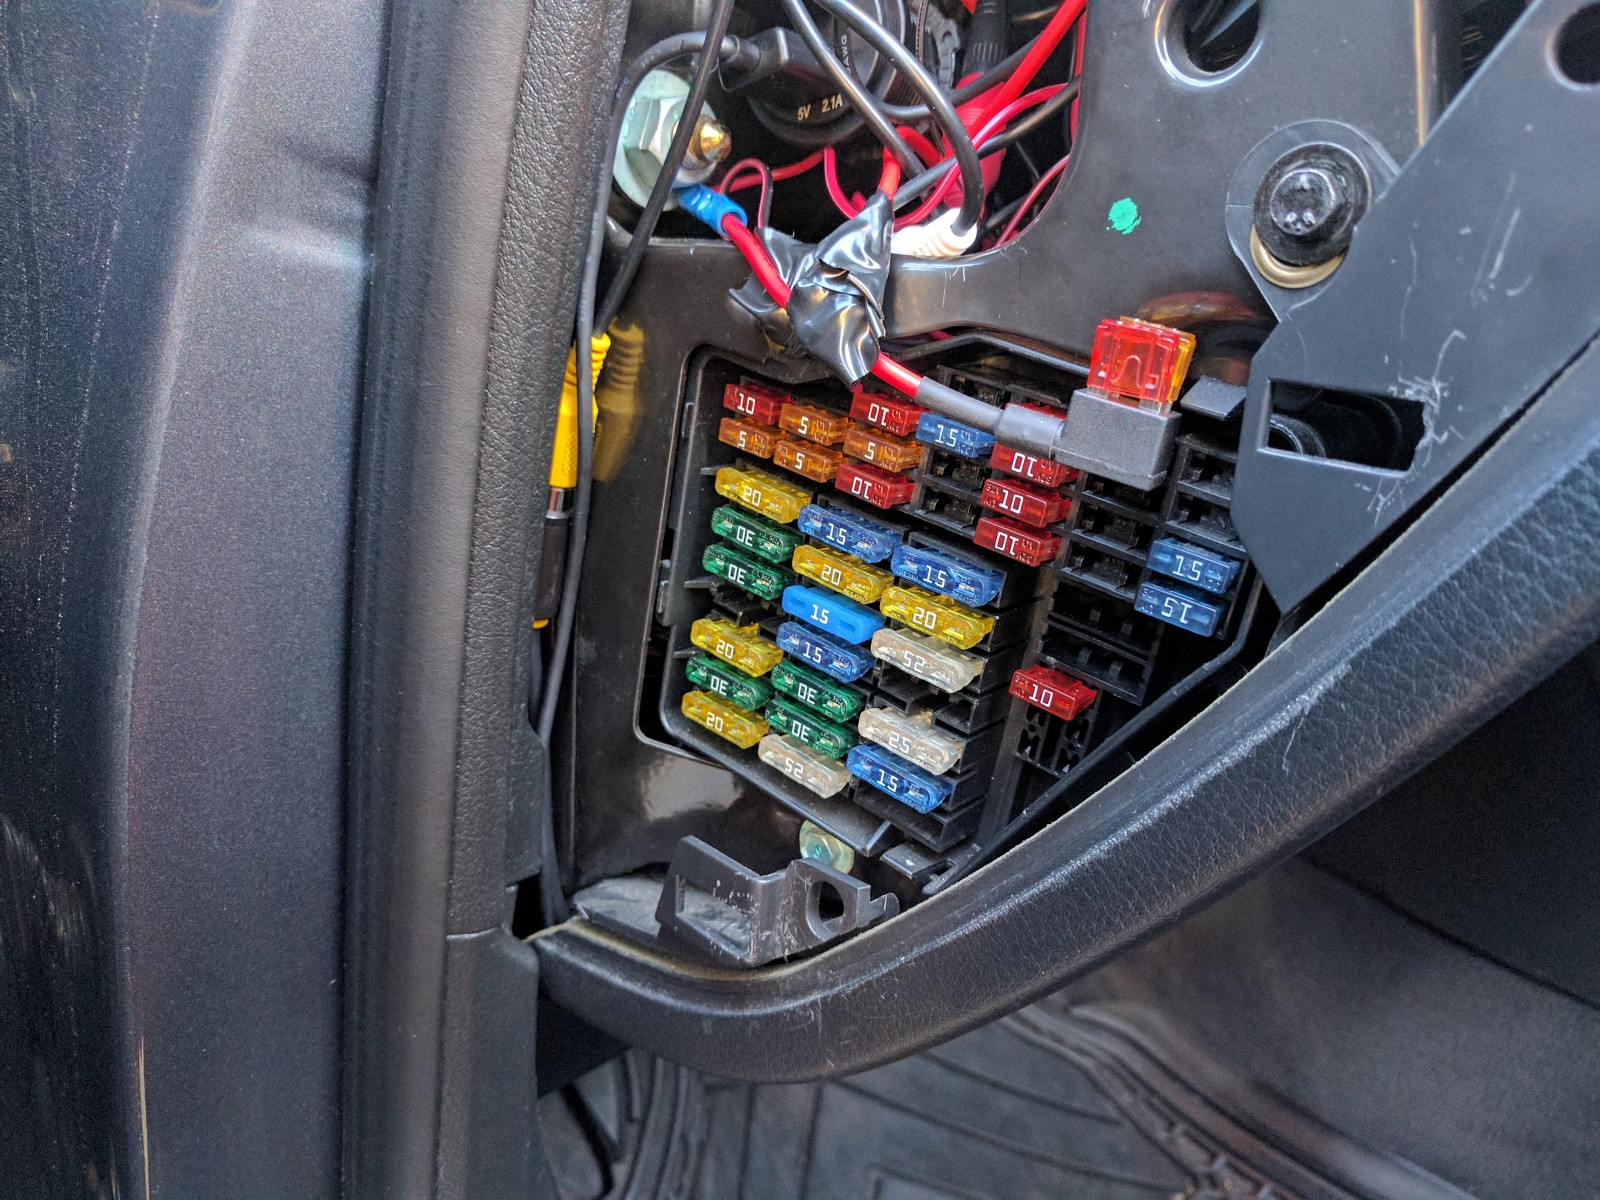 putting a raspberry pi in a car is a great idea here u2019s bat auto bat auto bat auto bat auto